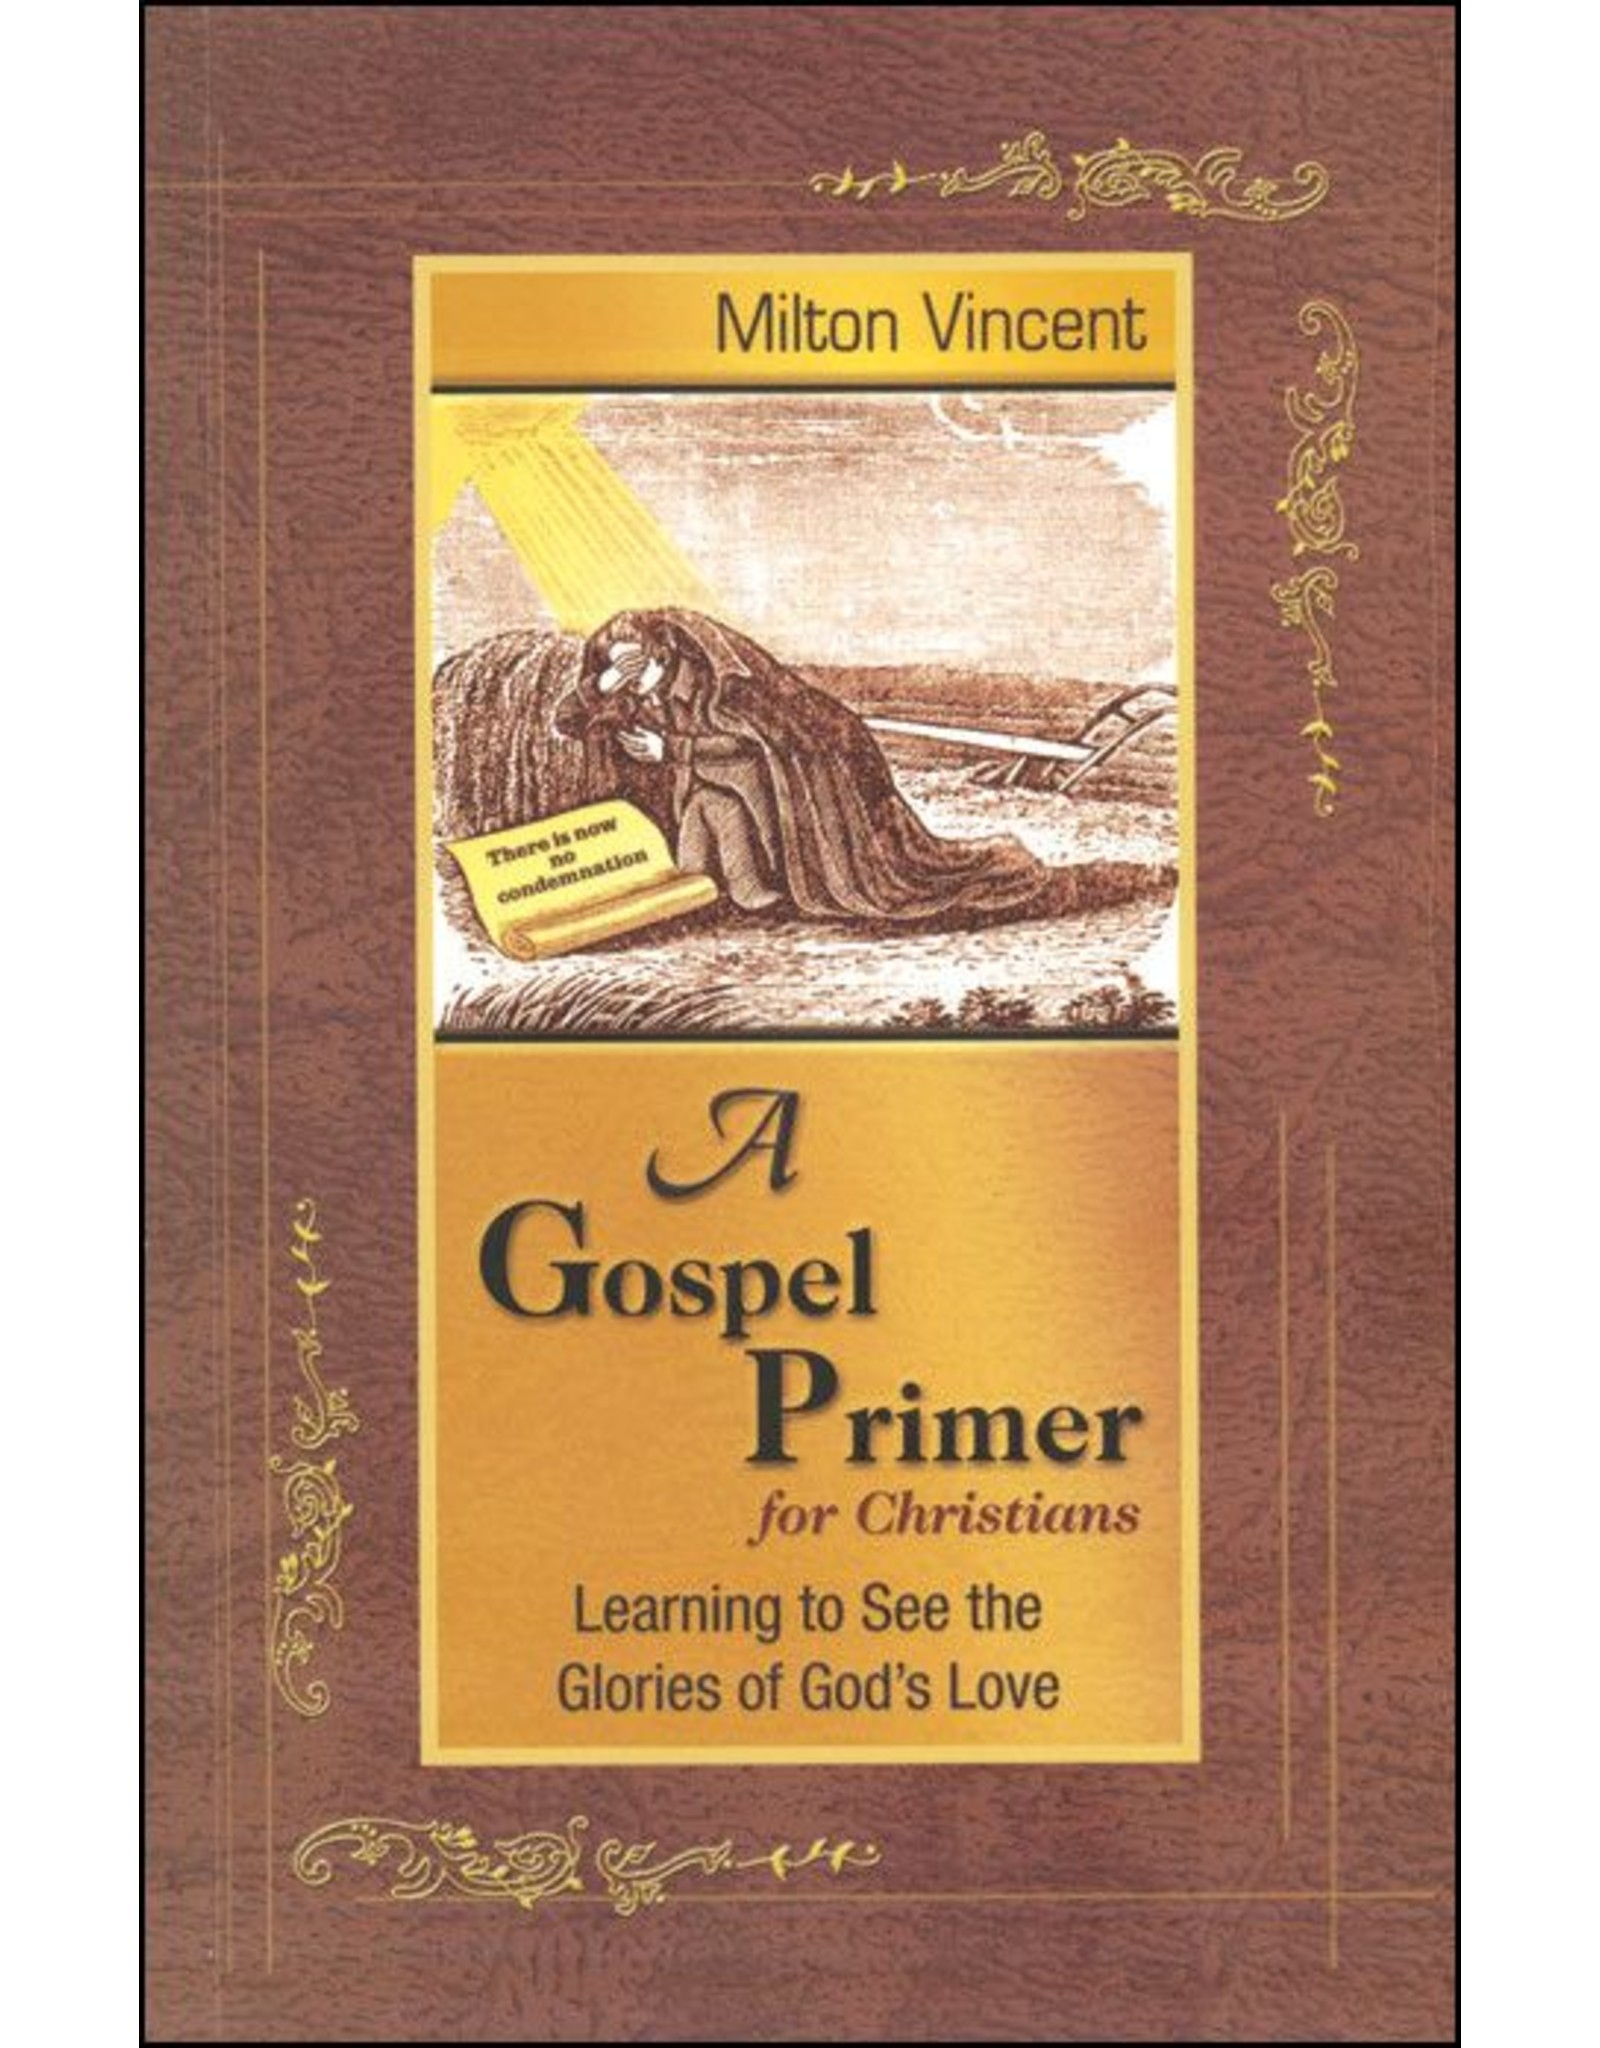 Focus Publishing A Gospel Primer for Christians: Learning to See the Glories of God's Love